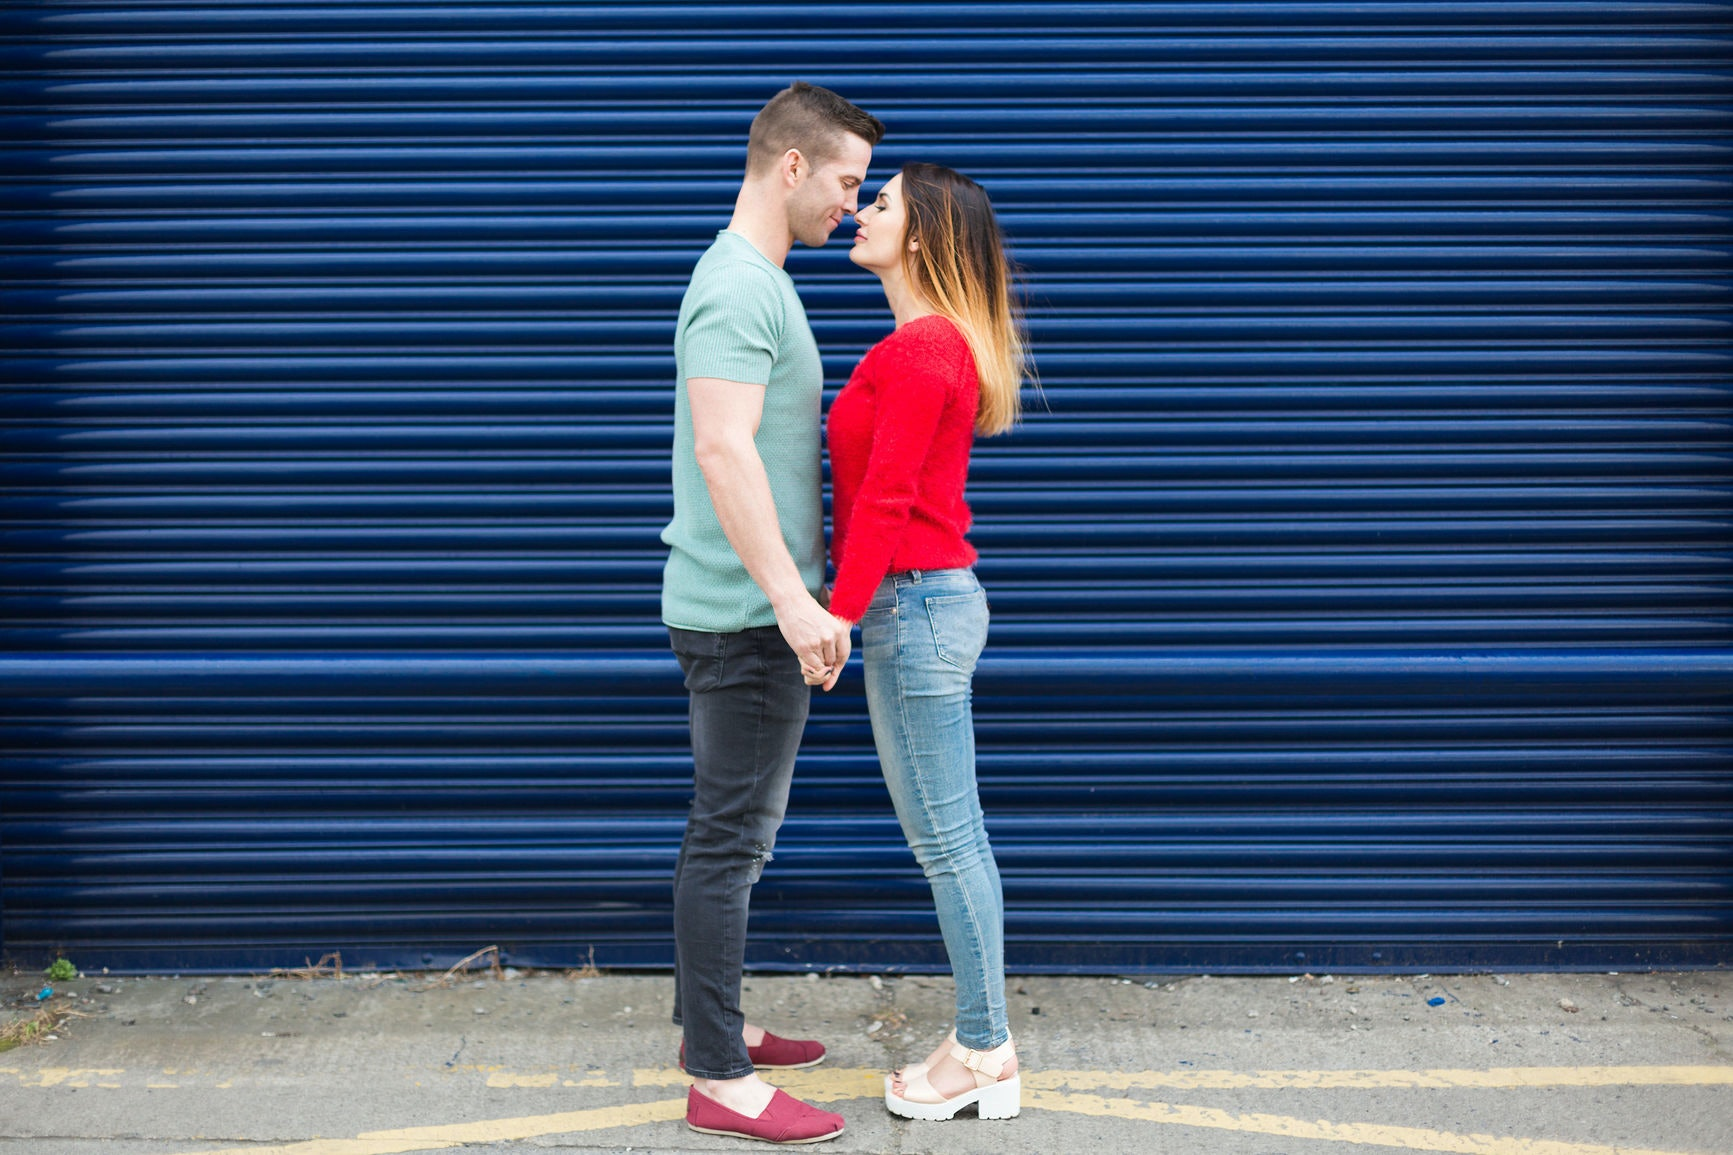 How often should you see someone youre casually dating